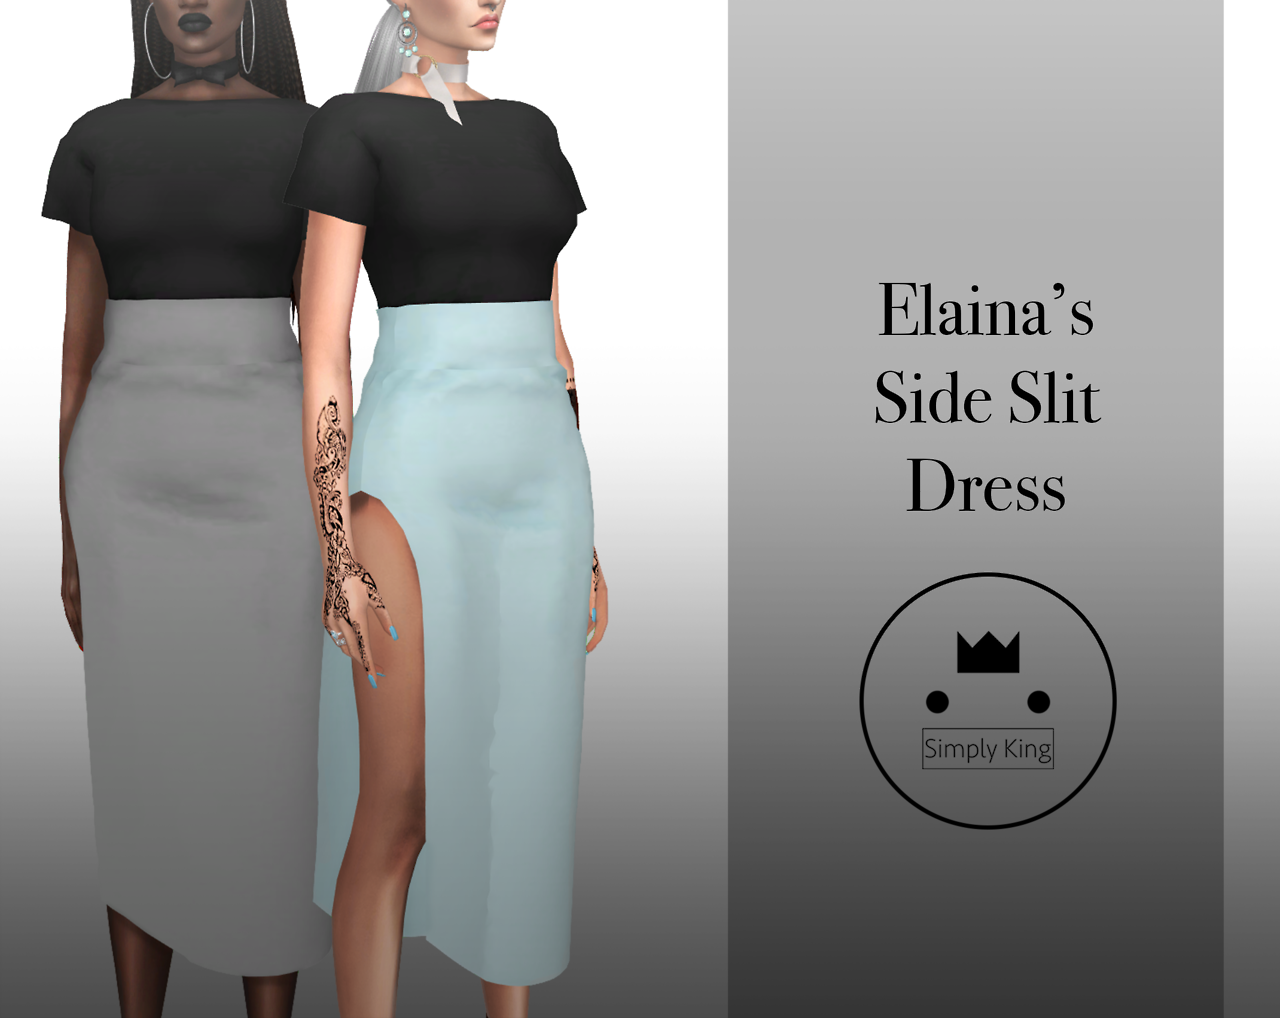 Pin by Myisha Bowman on My Ts4cc ❤️ | Sims 4, Sims, Sims 4